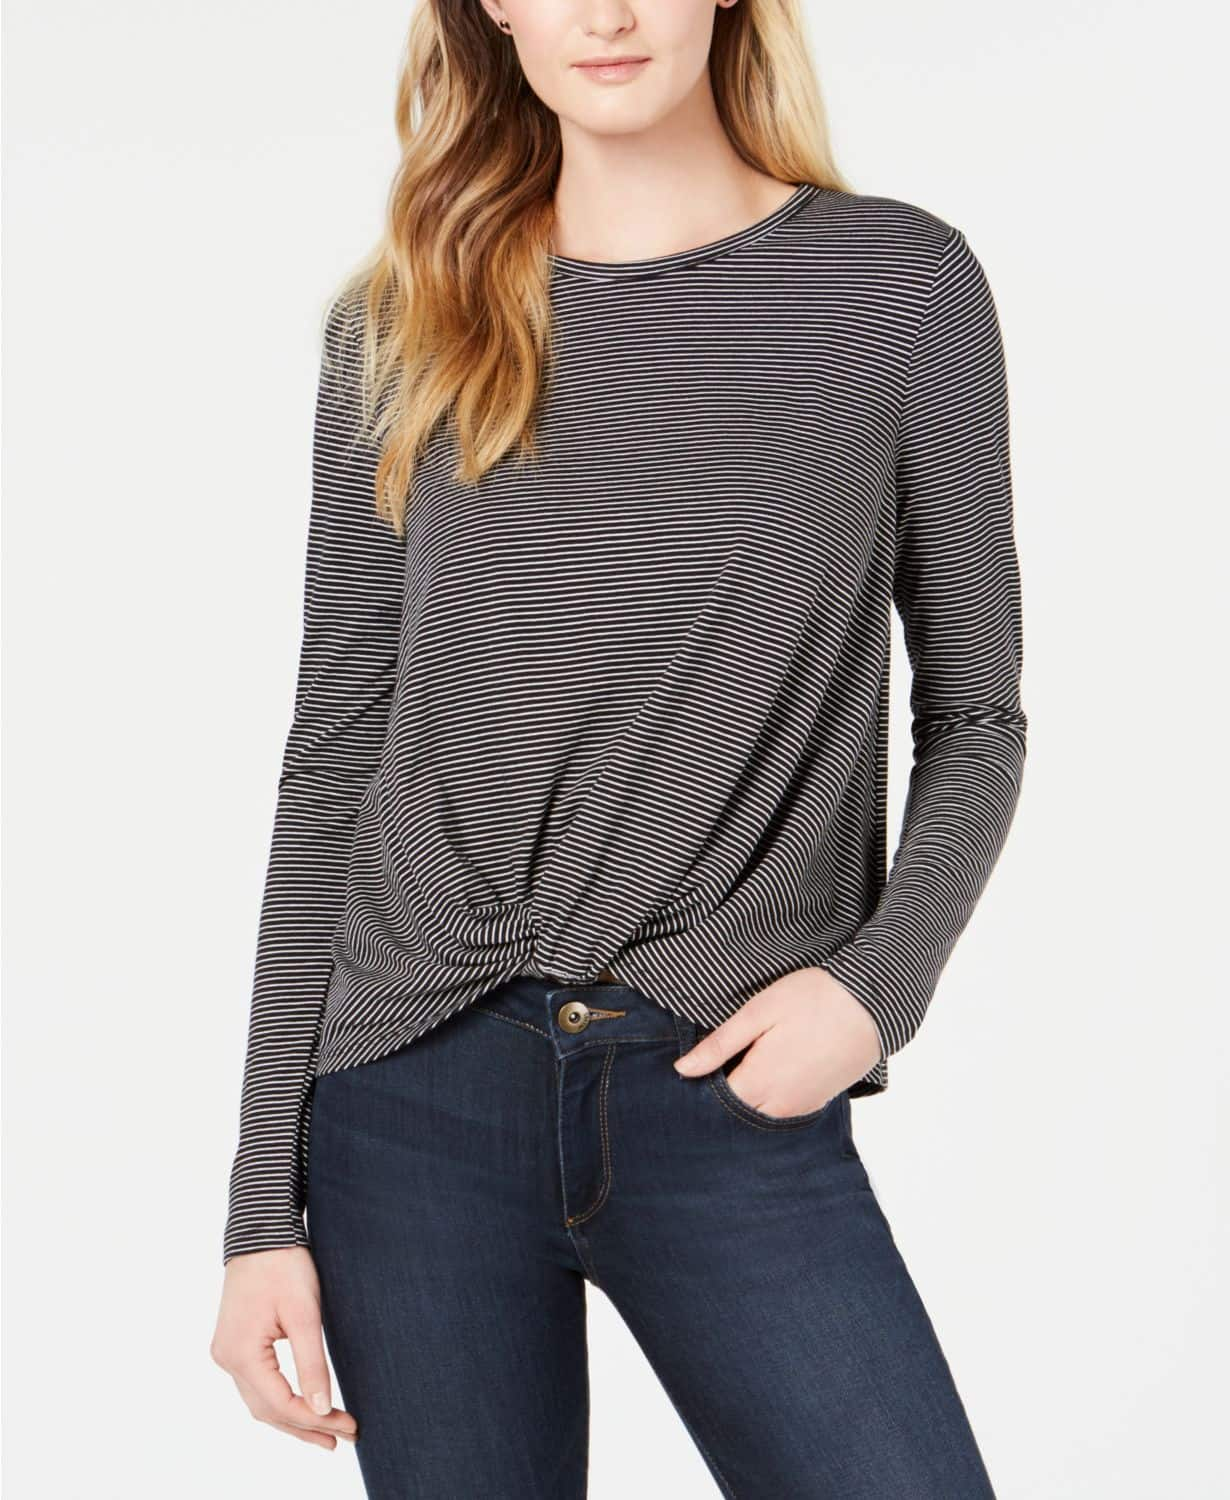 Striped Knot-Front Top, Created for Macy's $9.96